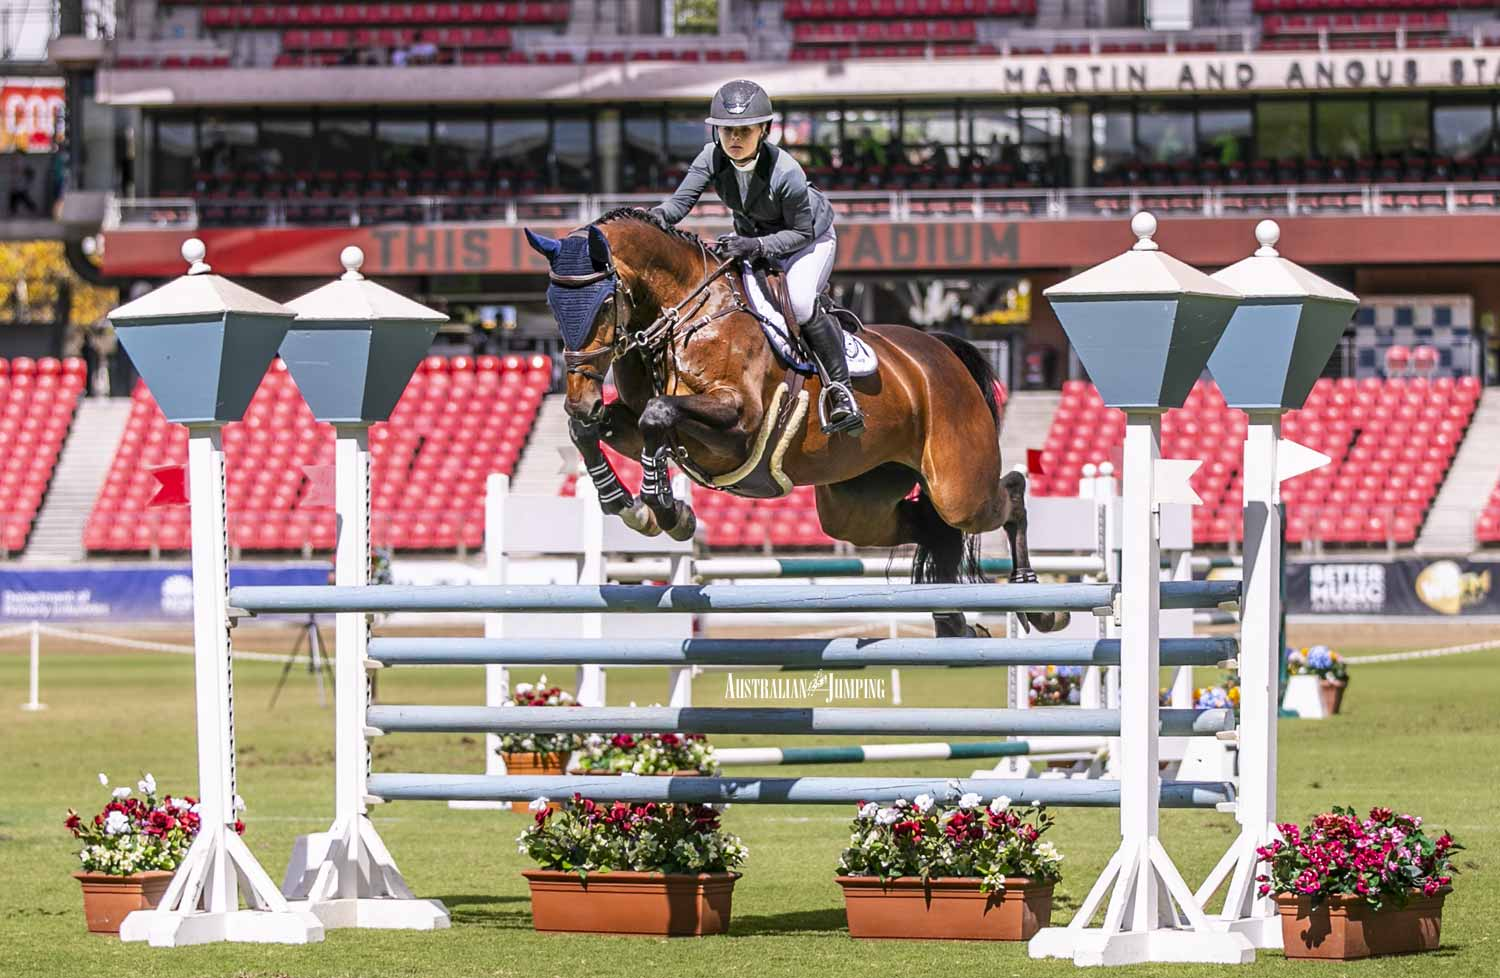 Jumping at Sydney Royal Leaps into Action